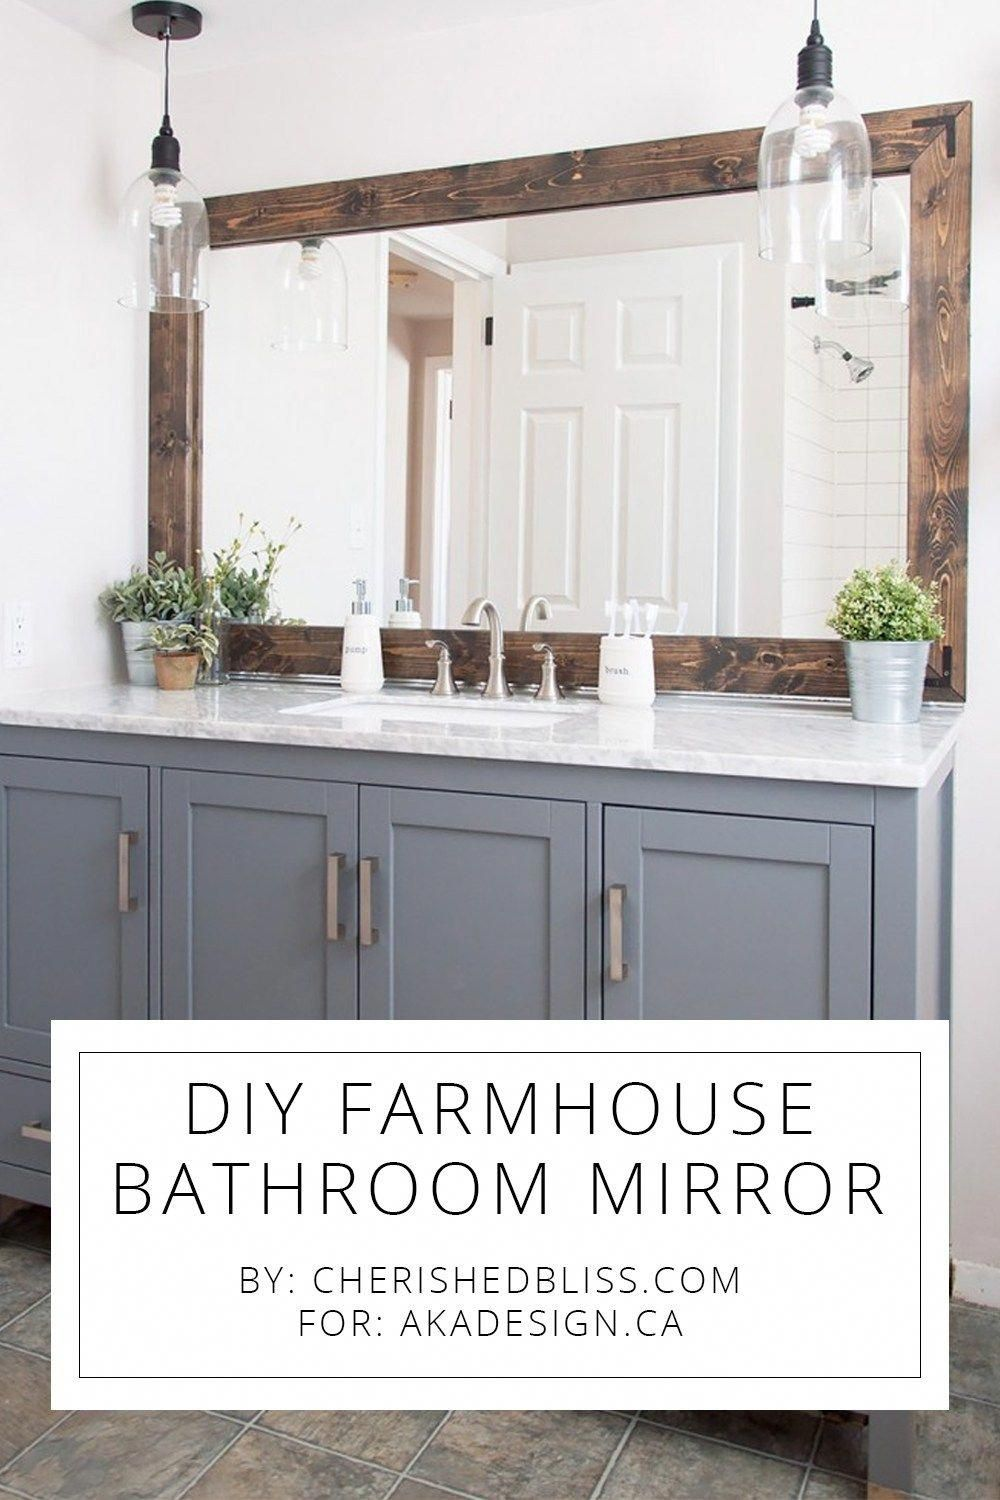 DIY Farmhouse Bathroom Mirror Tutorial